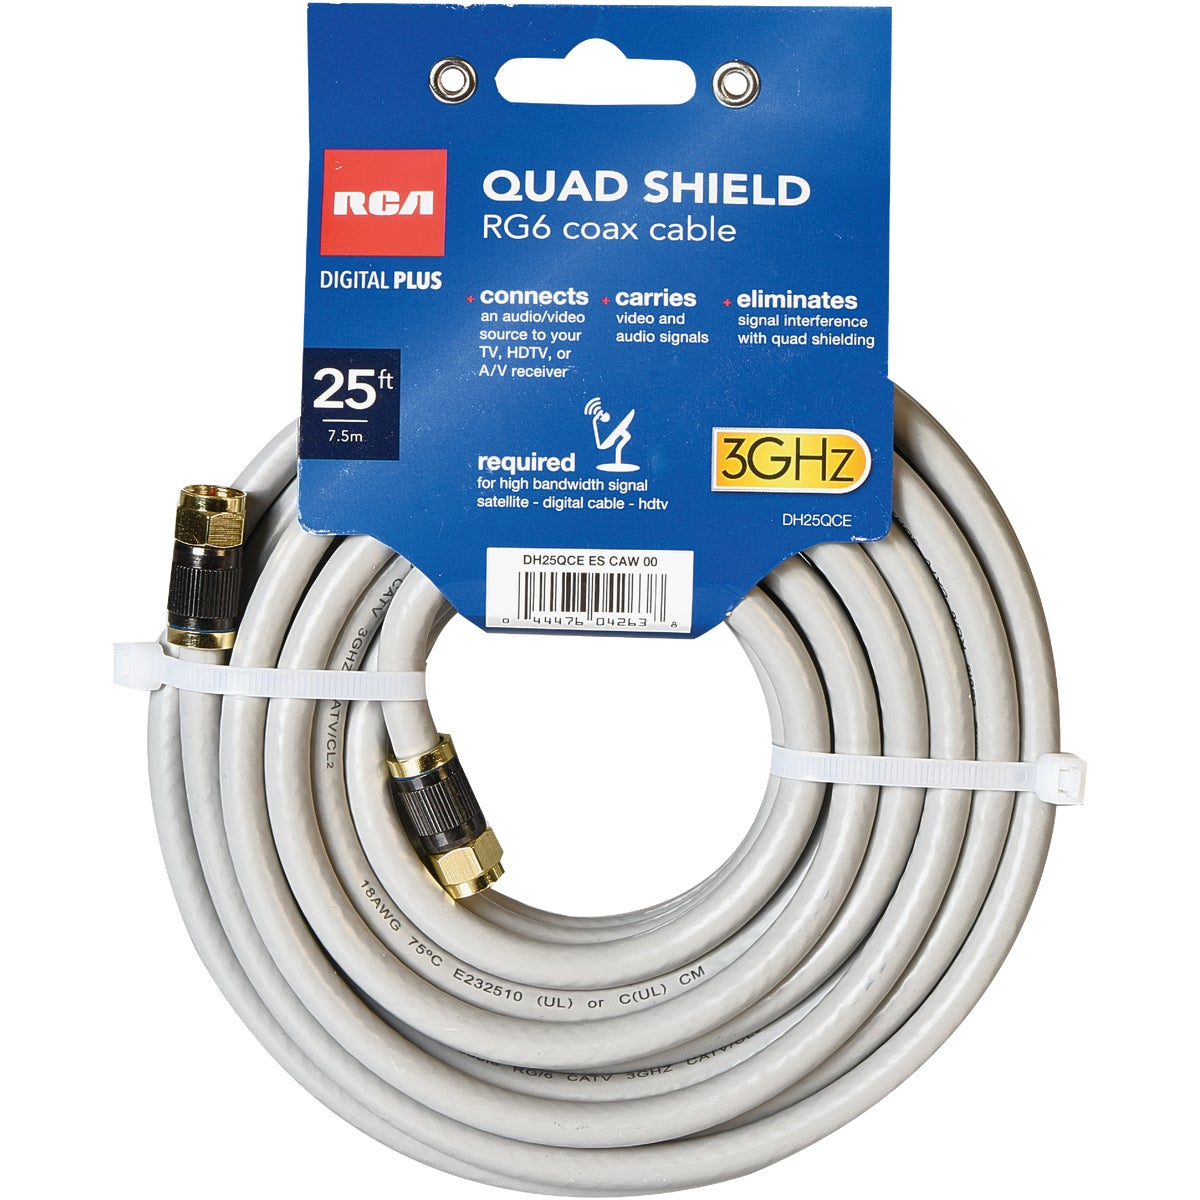 25' QUAD SHIELD CABLE